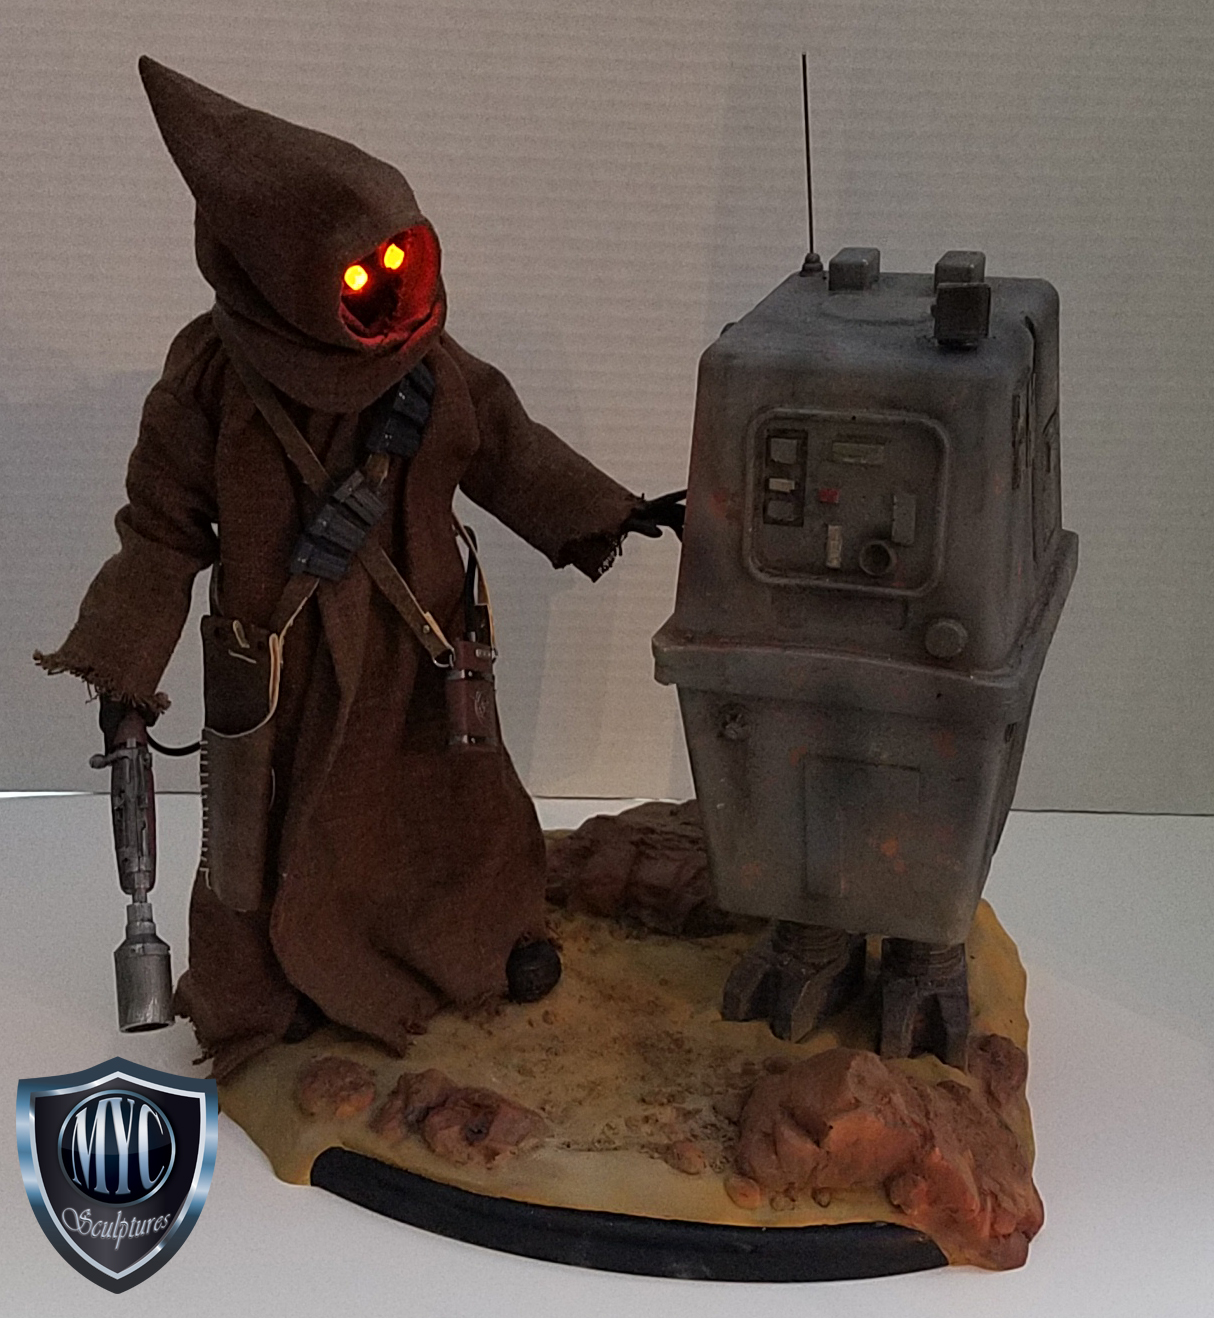 Jawa_and_Gonk_Droid_Statue_12